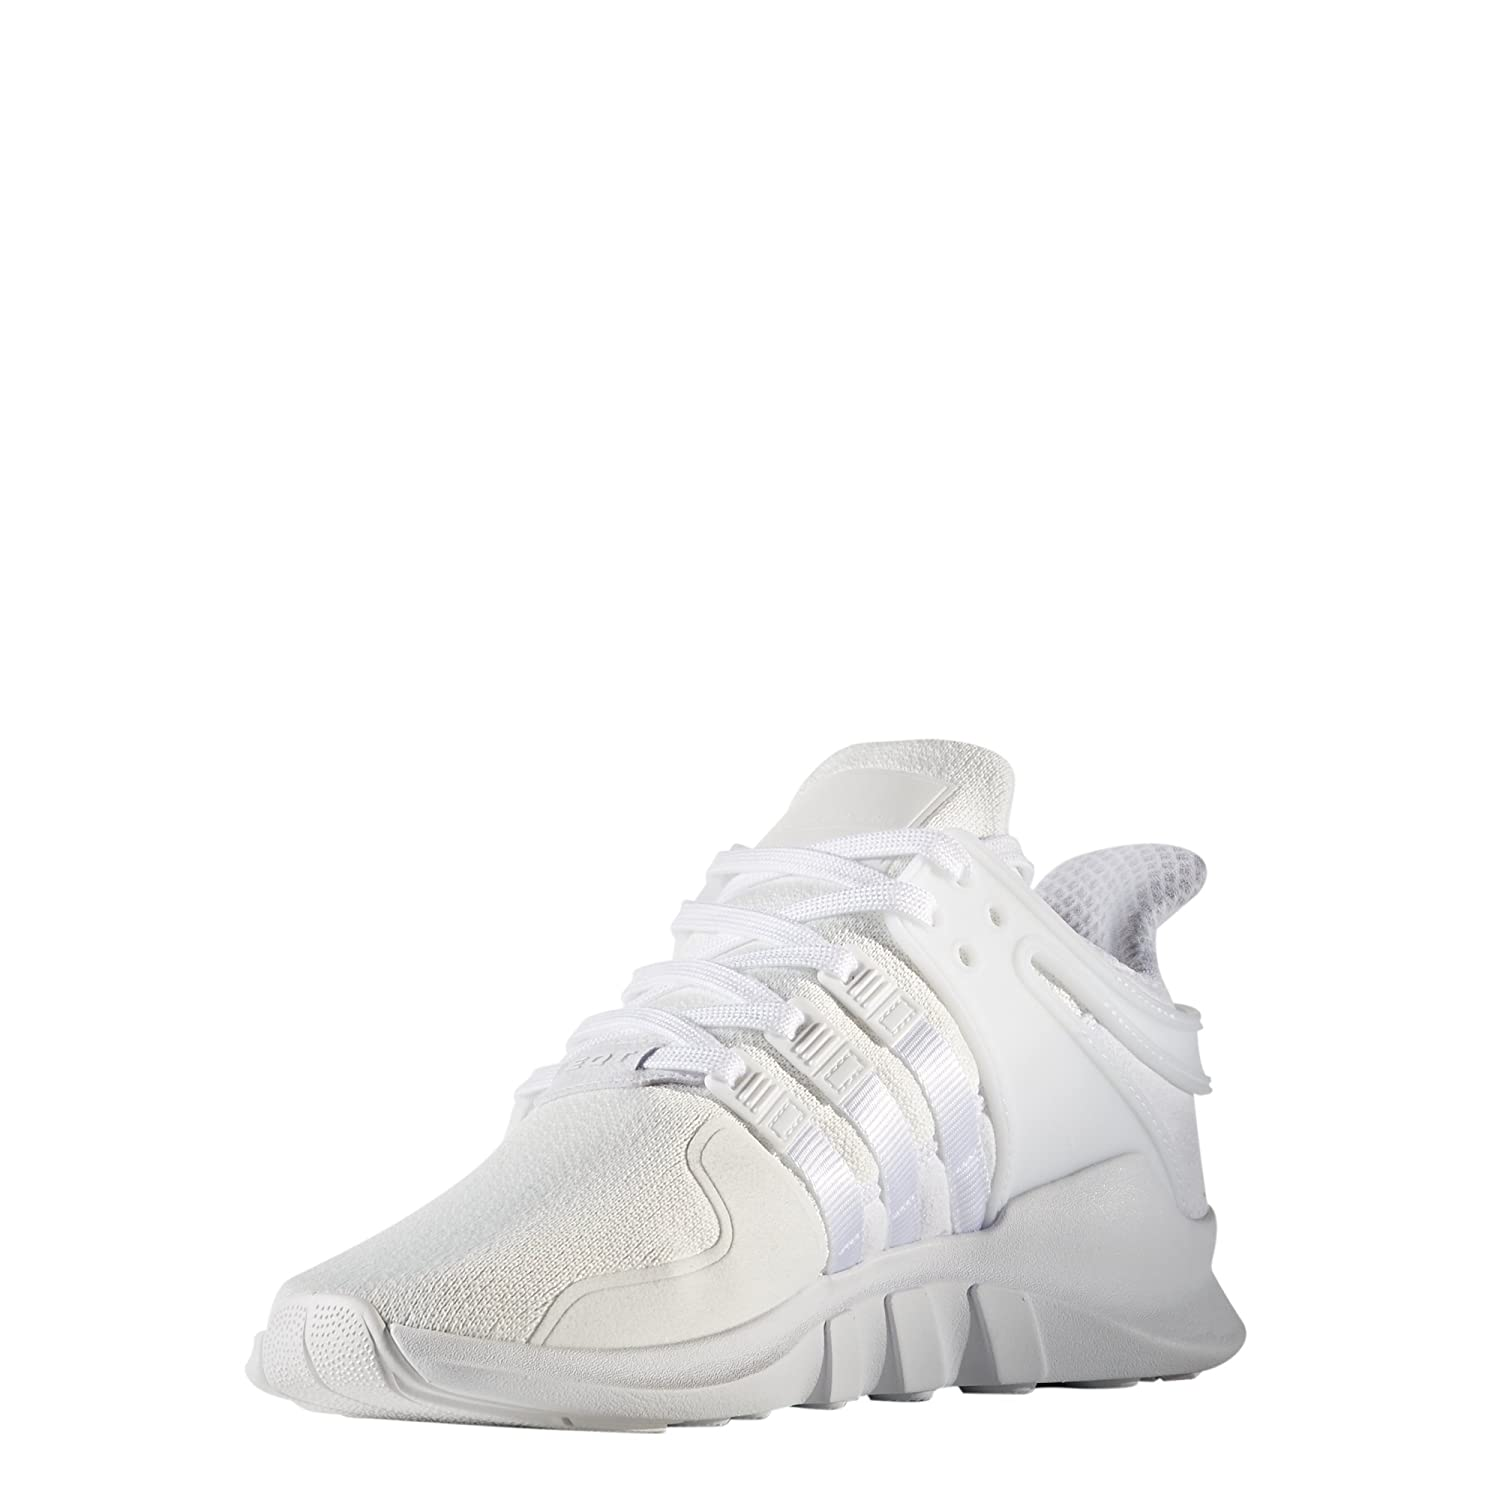 cheap for discount 91ff9 3b026 Adidas trainers for men, EQT Support ADV BB1302, black and white